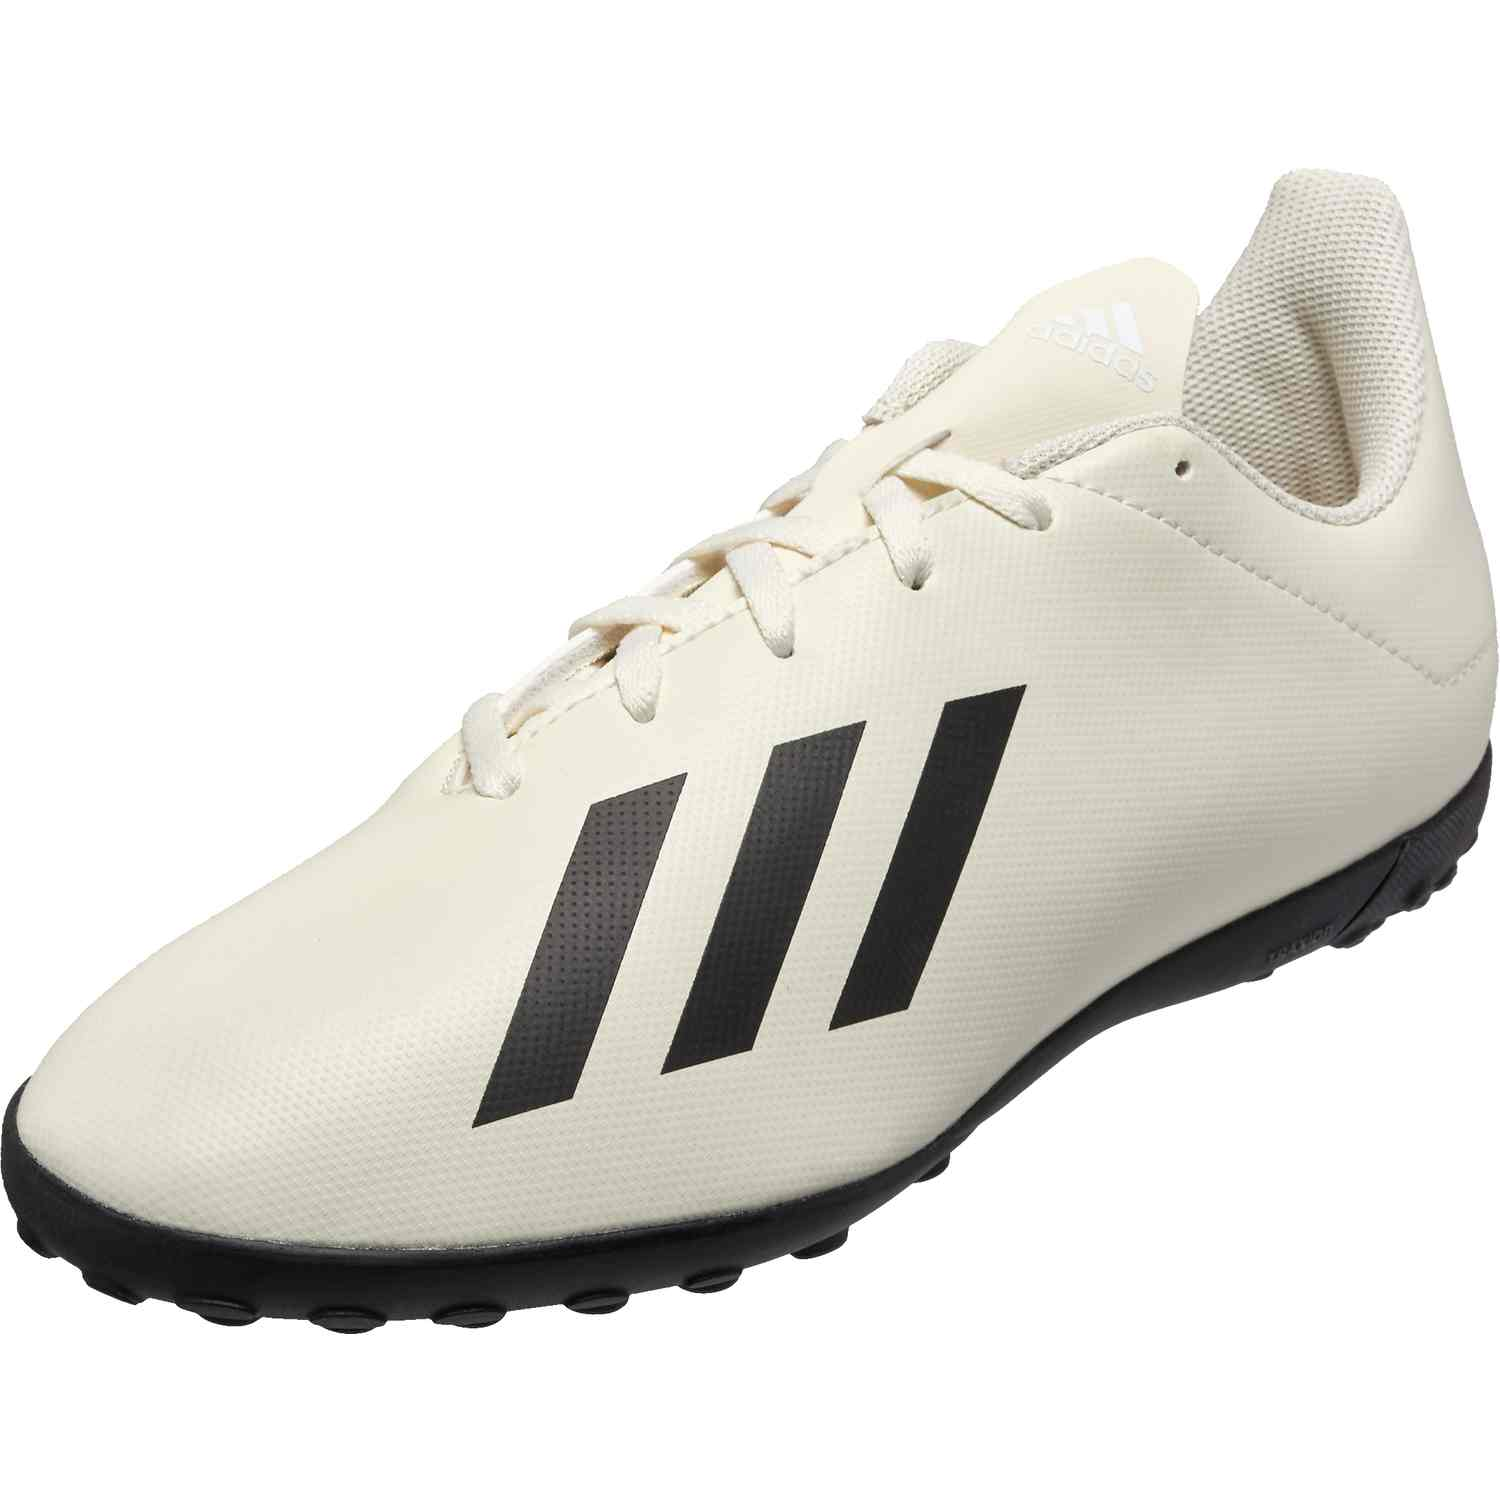 e56c7ccfe3d577 adidas X Tango 18.4 TF - Youth - Off White White Black - SoccerPro